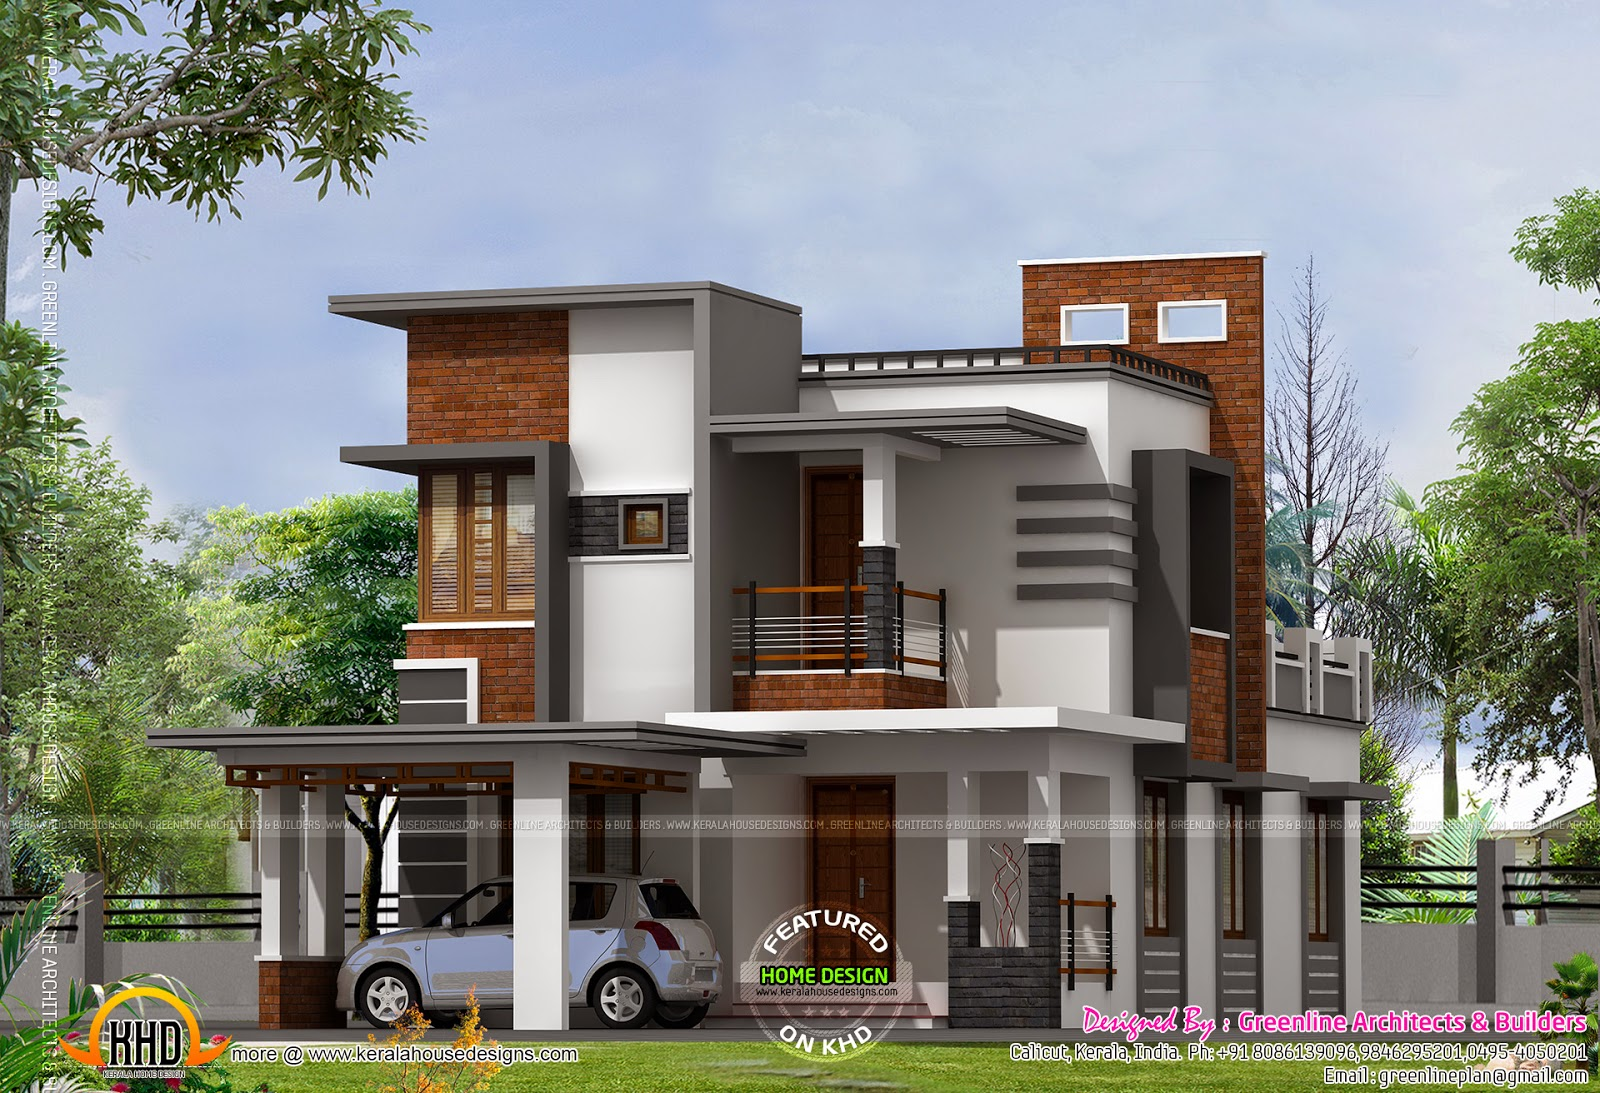 Low cost contemporary house kerala home design and floor for Modern house cost